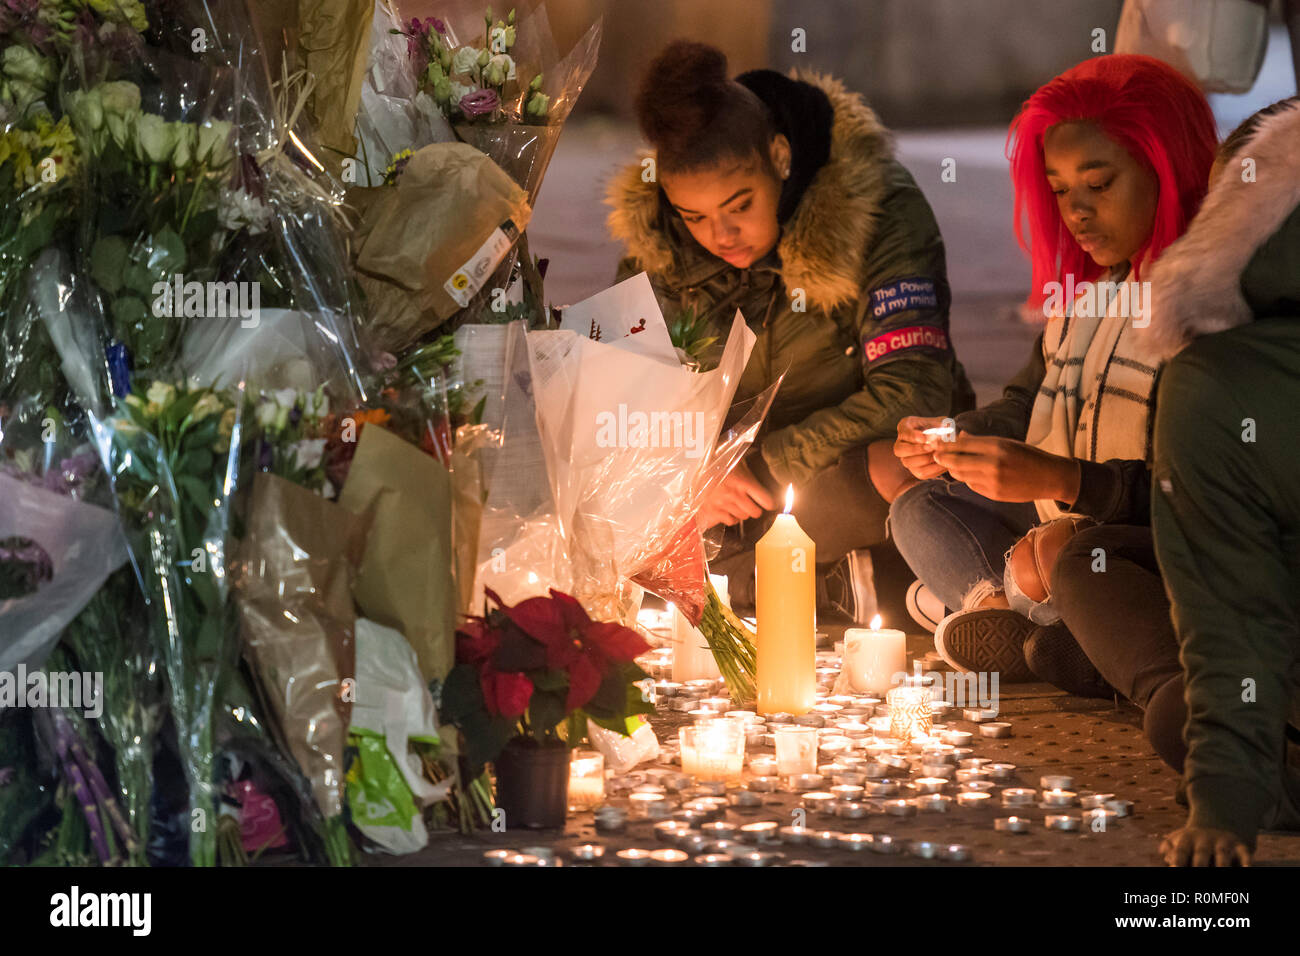 Clapham South, London, UK. 5th Nov 2018. After the crowd has gone a small group of girls stay to tend the candles - A vigil is held for Malcolm Mide-Madariola, 17, from Peckham, the victim of Friday's stabbning at Clapham South Tube Station. Credit: Guy Bell/Alamy Live News - Stock Image